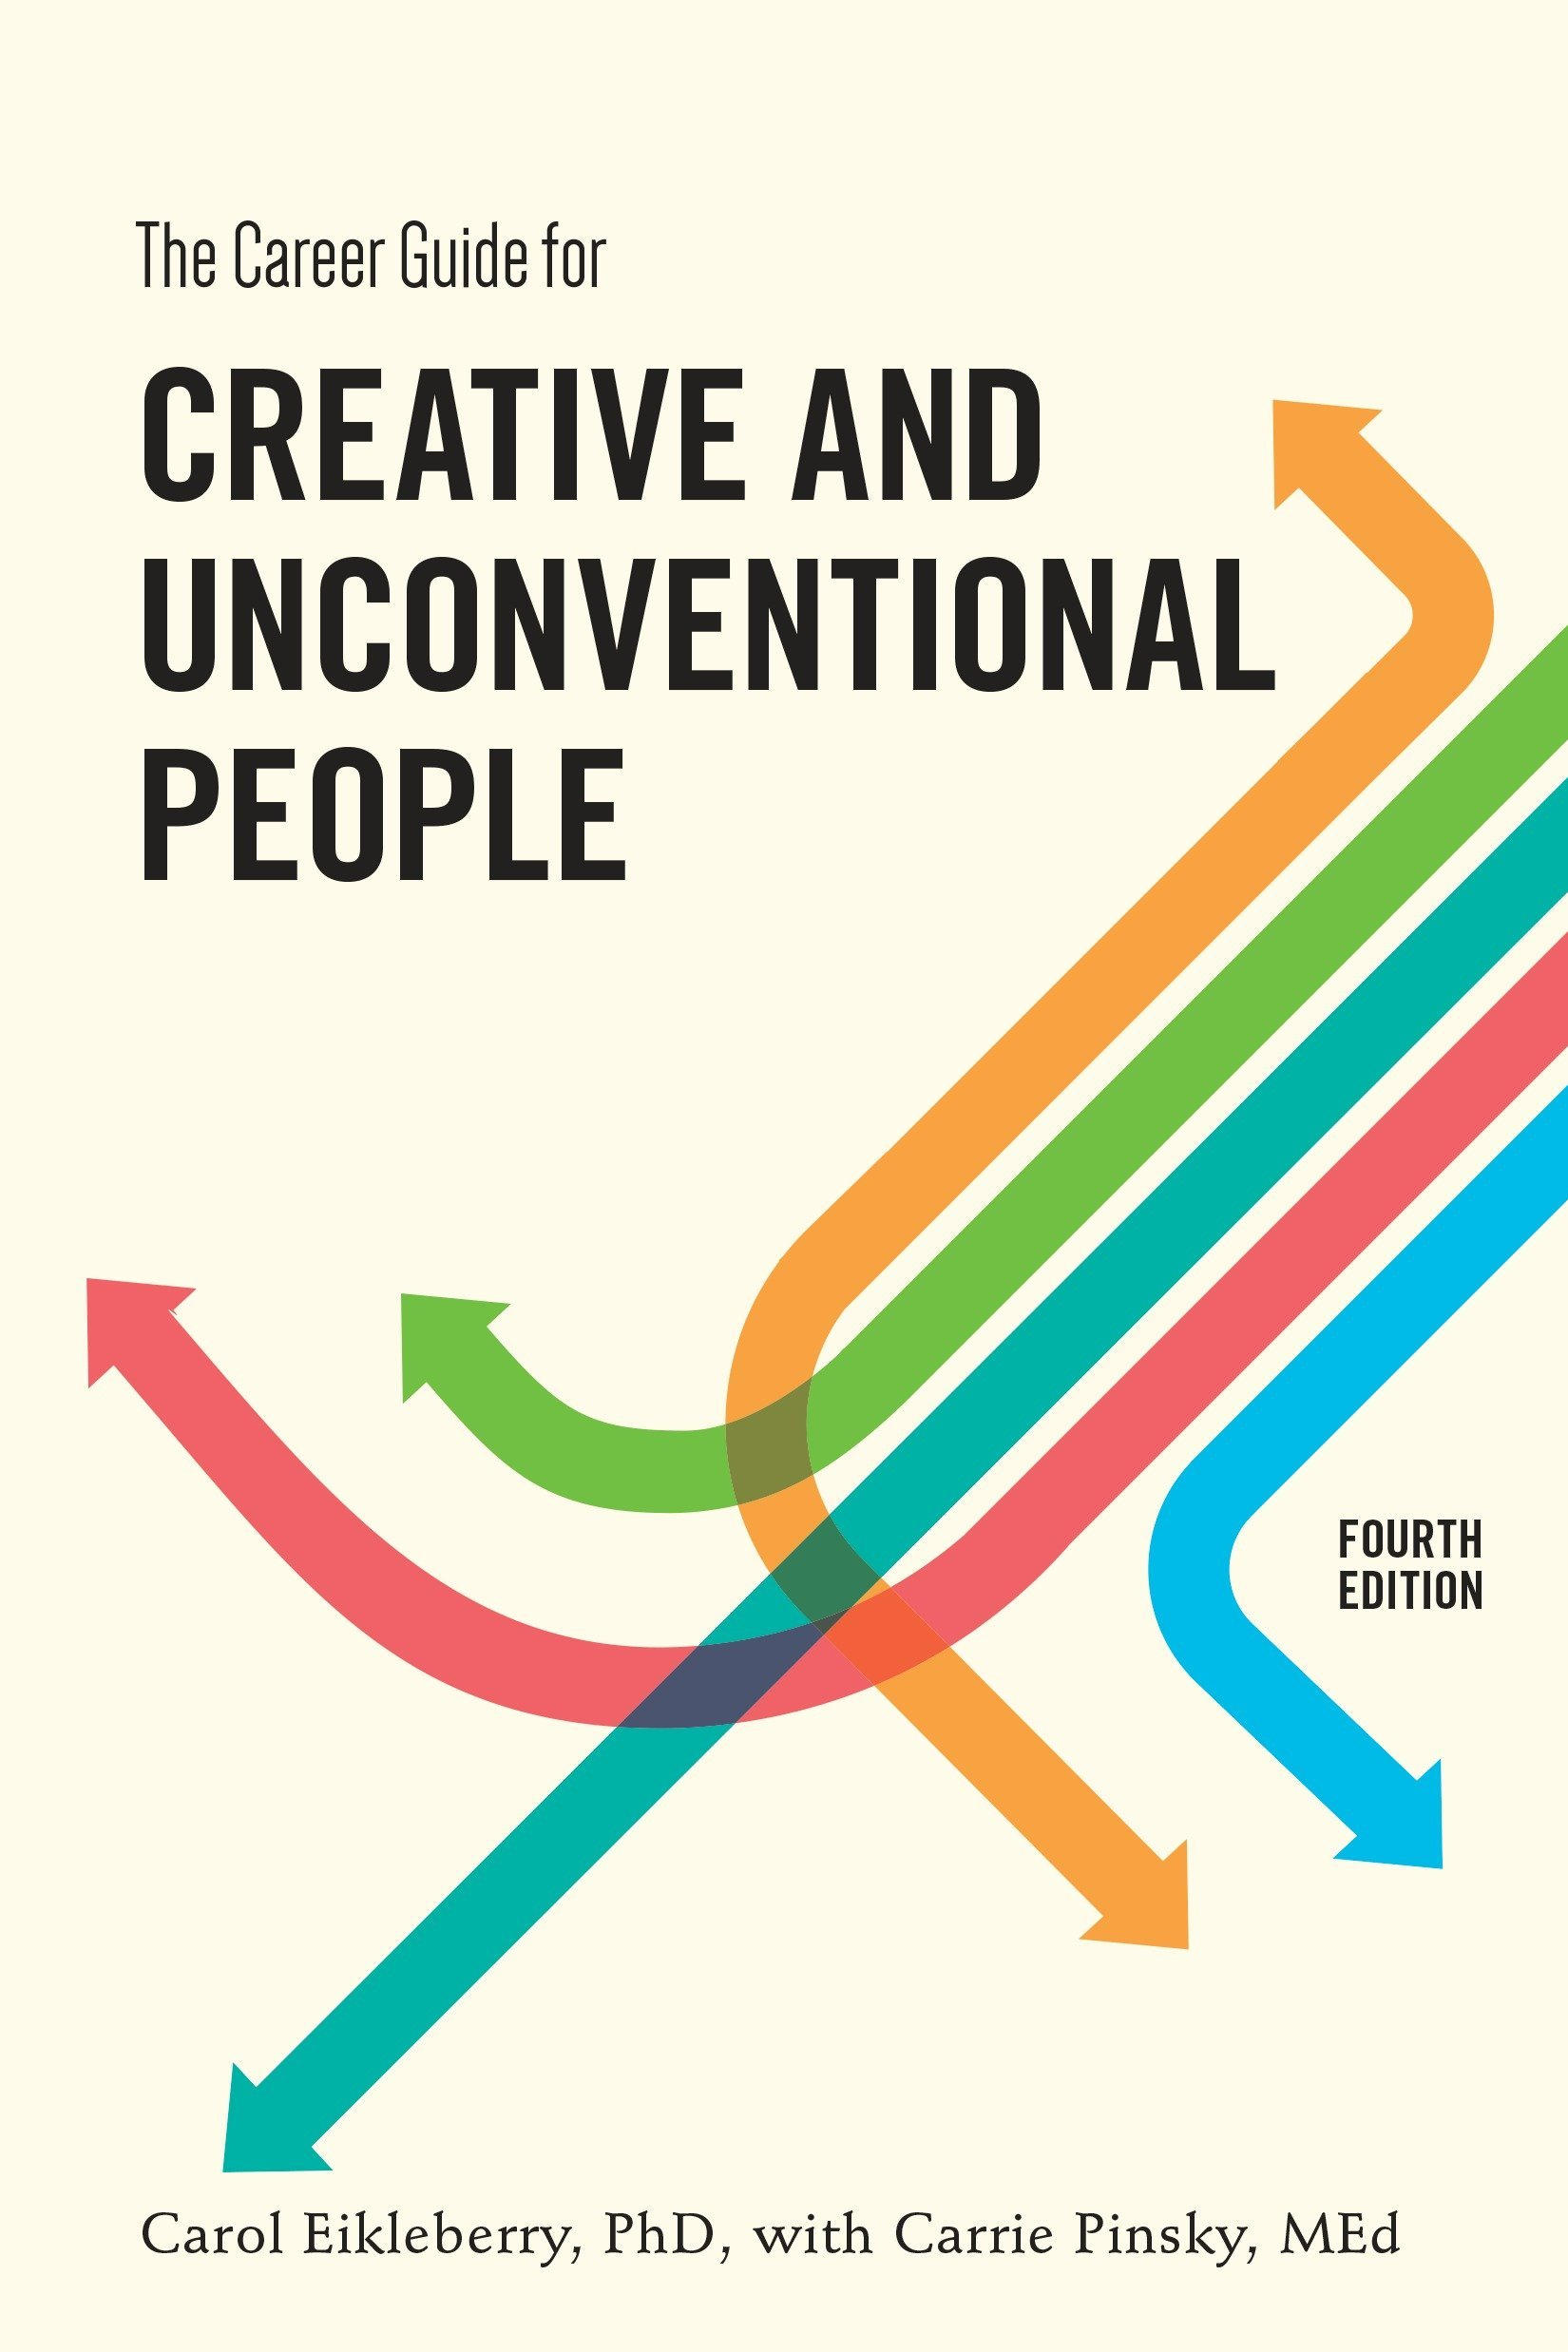 The Career Guide For Creative And Unconventional People Fourth